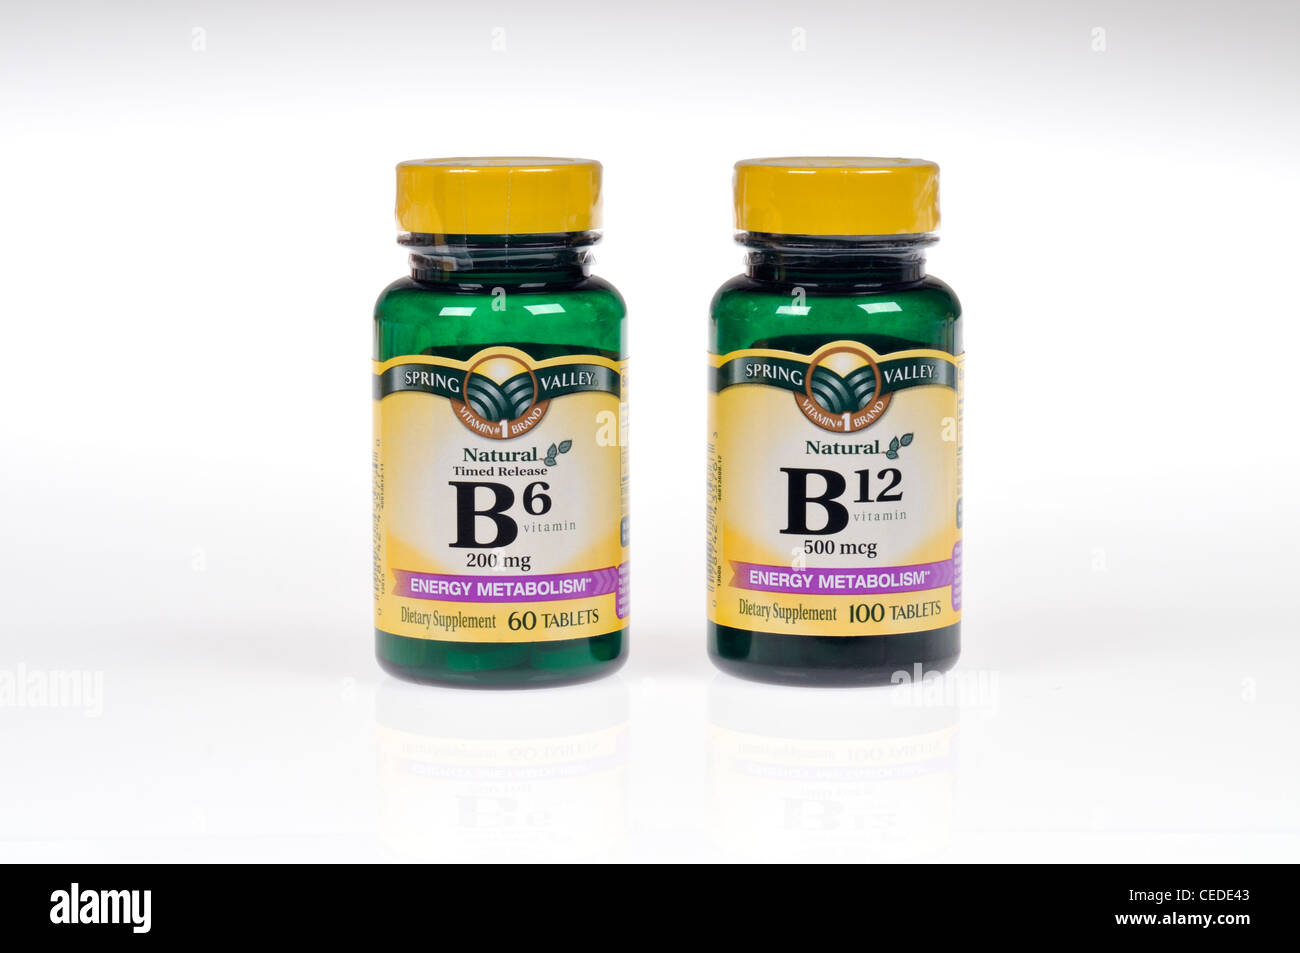 Bottles of Vitamins B6 and B12 on white background cutout - Stock Image